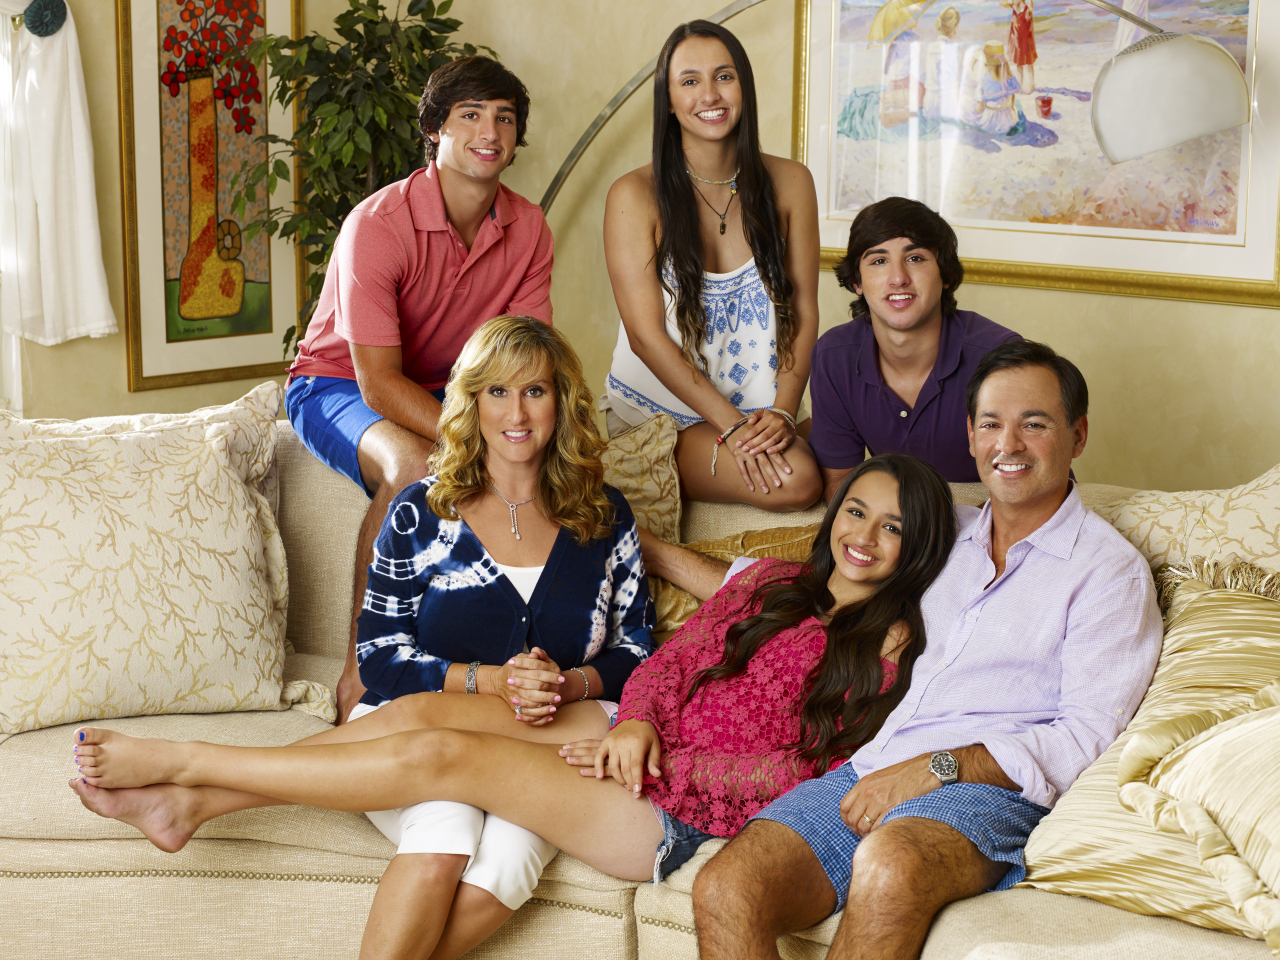 We absolutely can't wait to see trans teen Jazz Jennings' new reality show